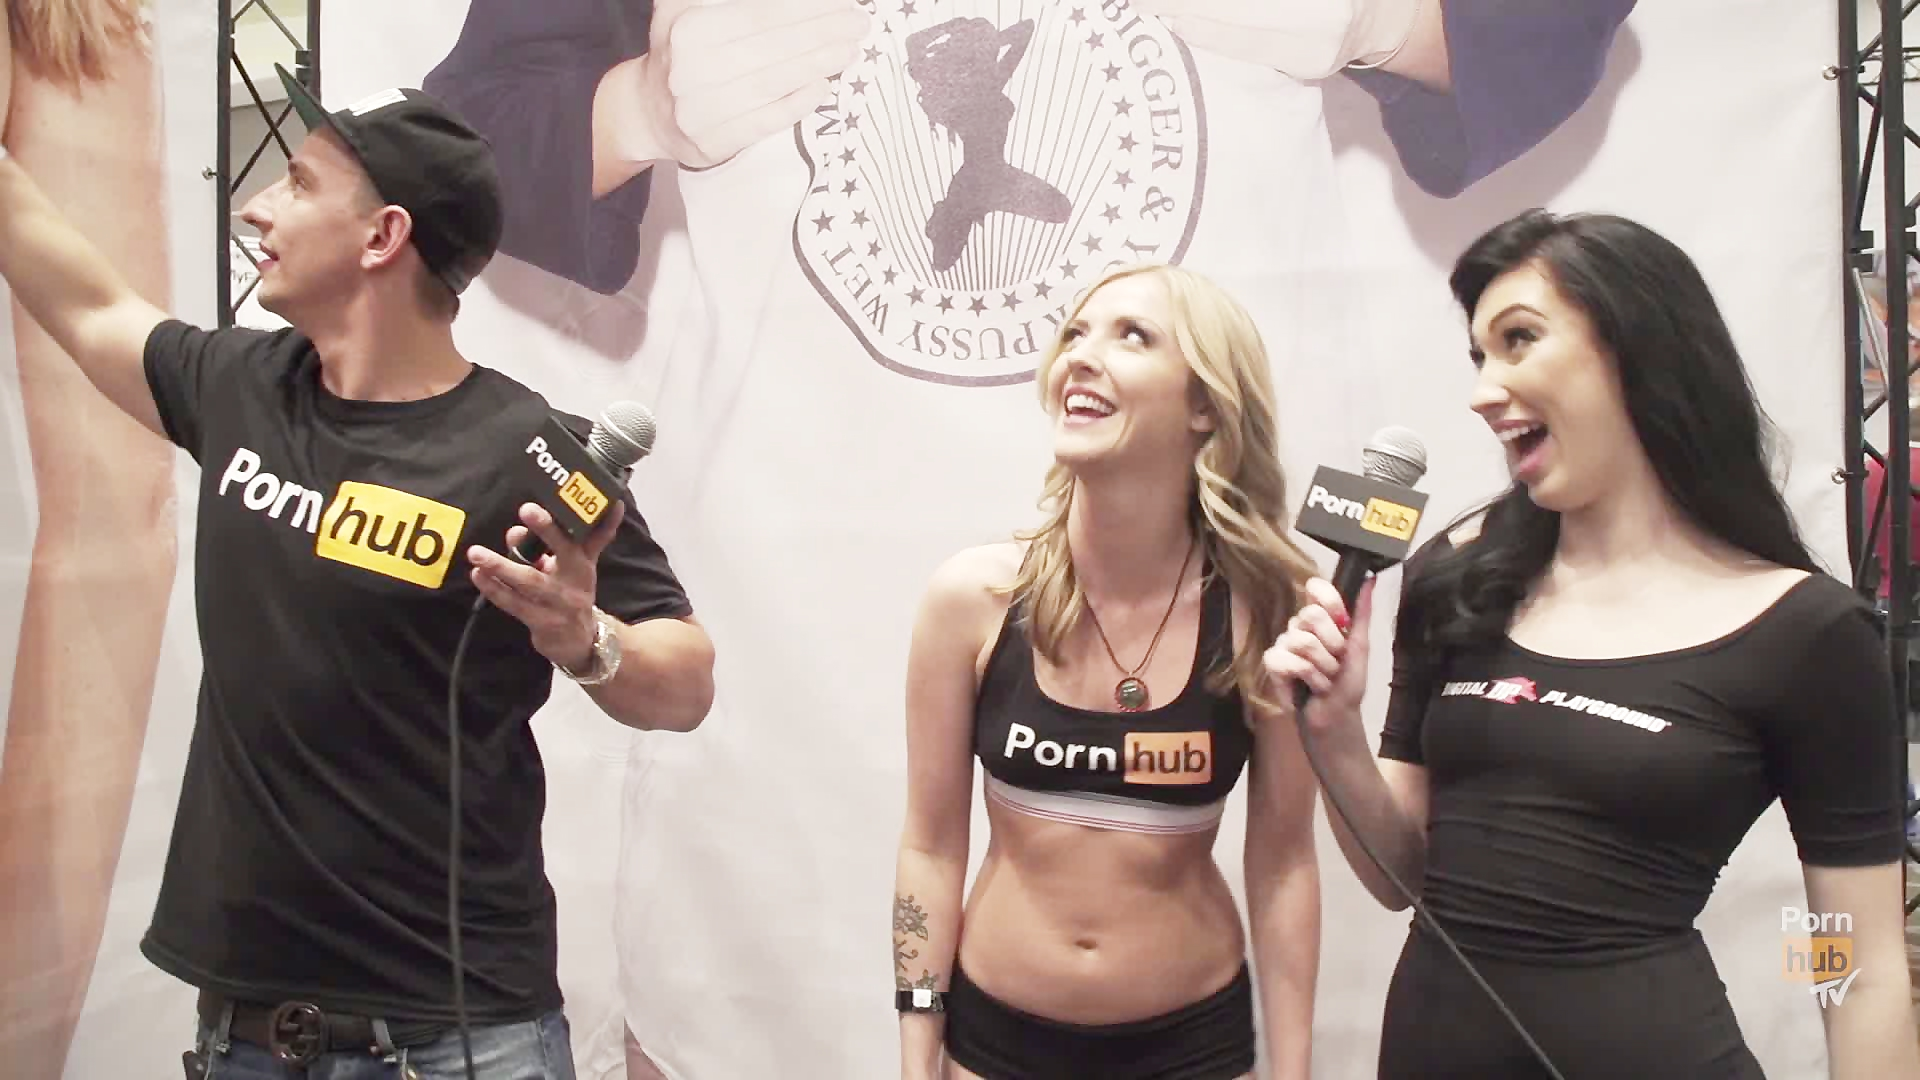 Vitaly zd at avn 2016 with phoenix marie and karla kush interviews 7